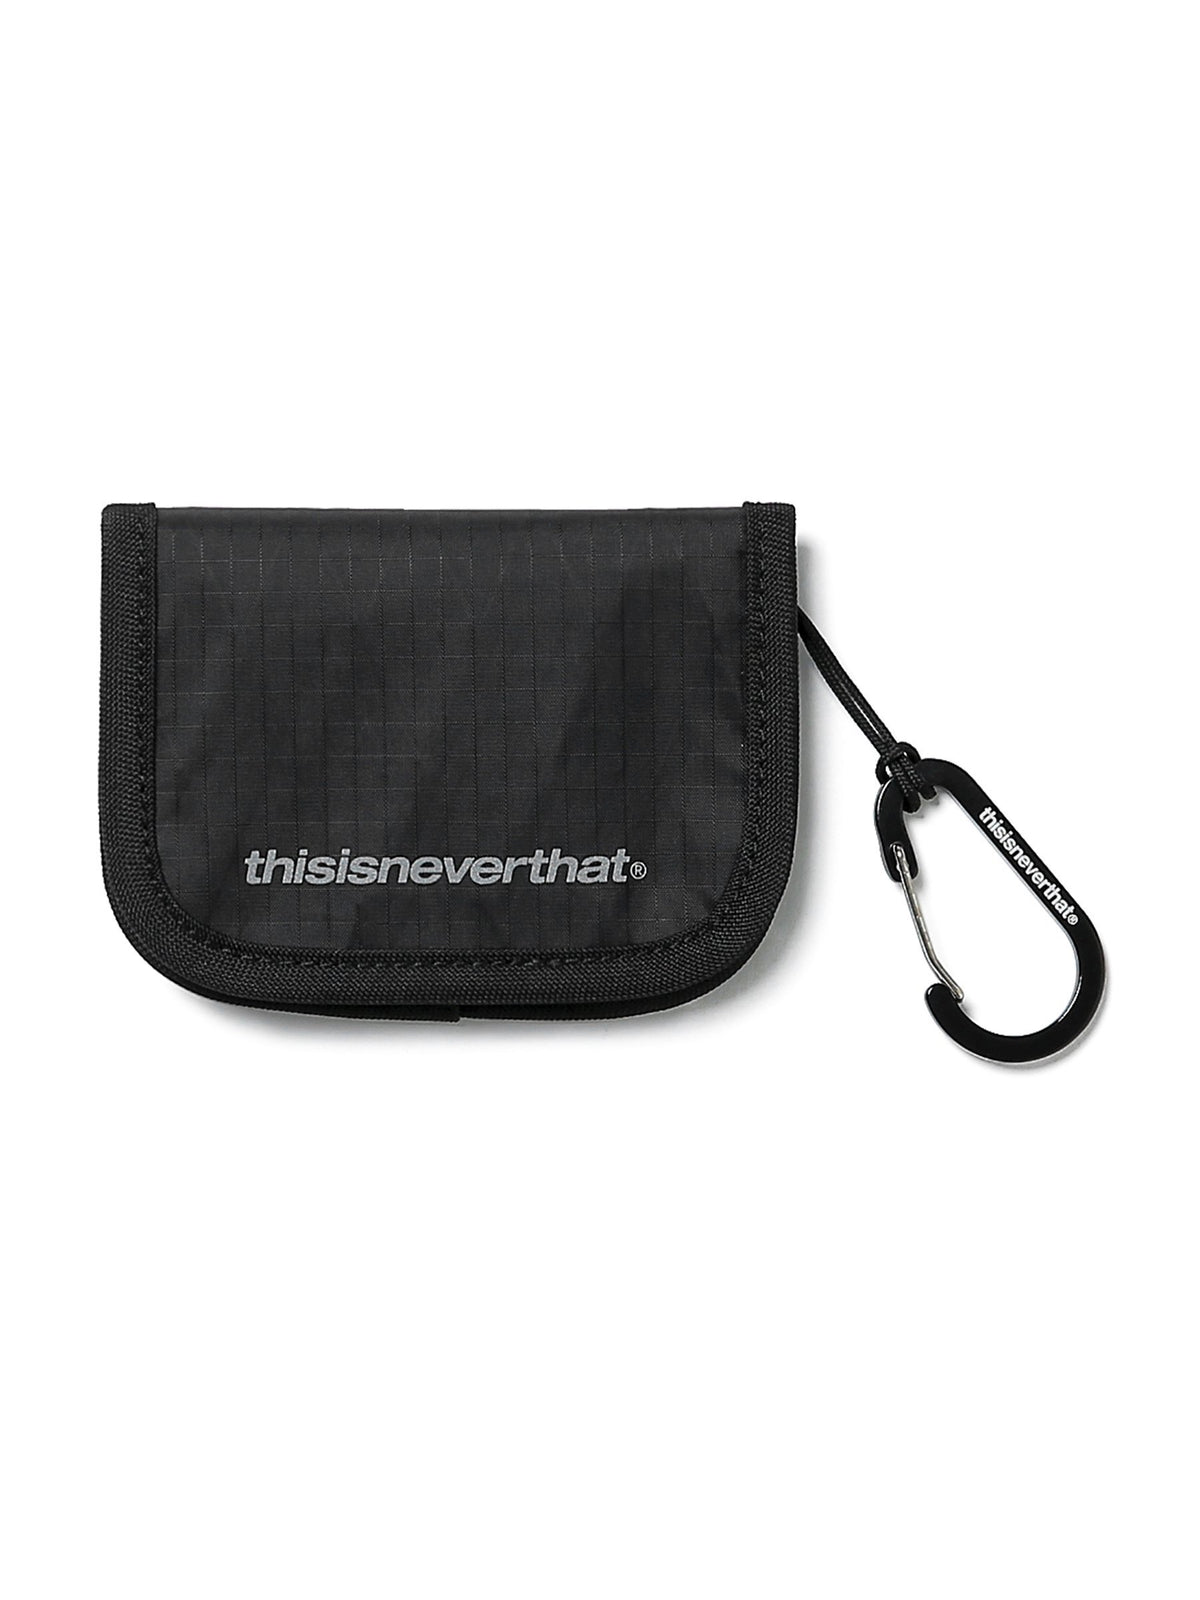 X-Pac™ SP Card Holder - thisisneverthat